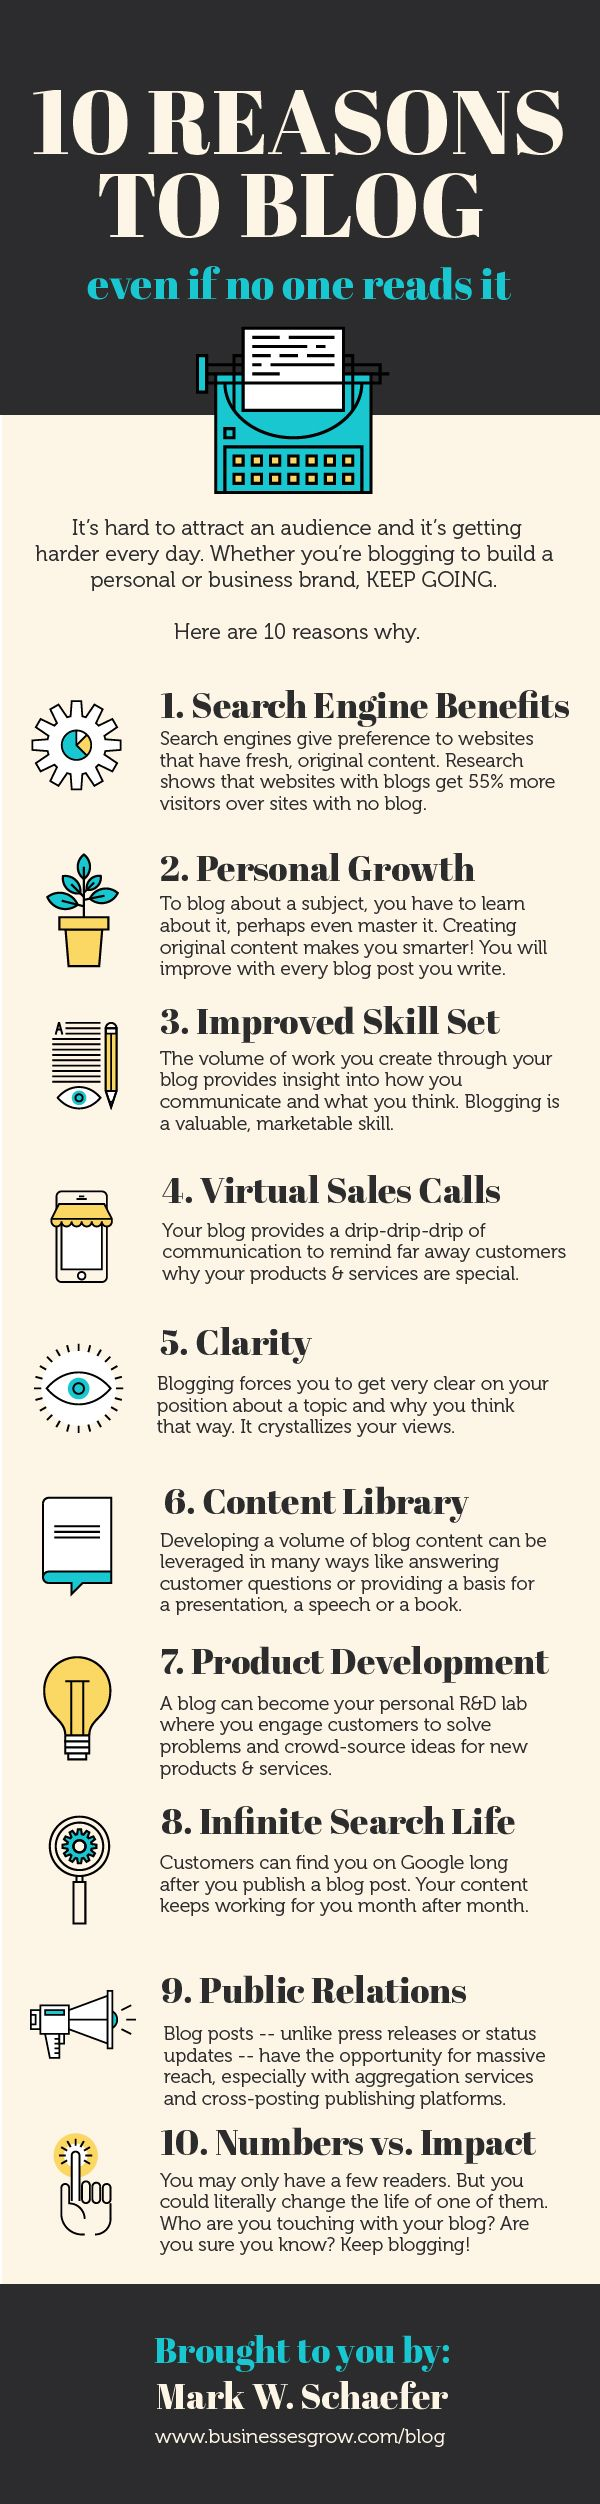 a10-reasons-to-blog-even-if-no-one-reads-it-final-infographic